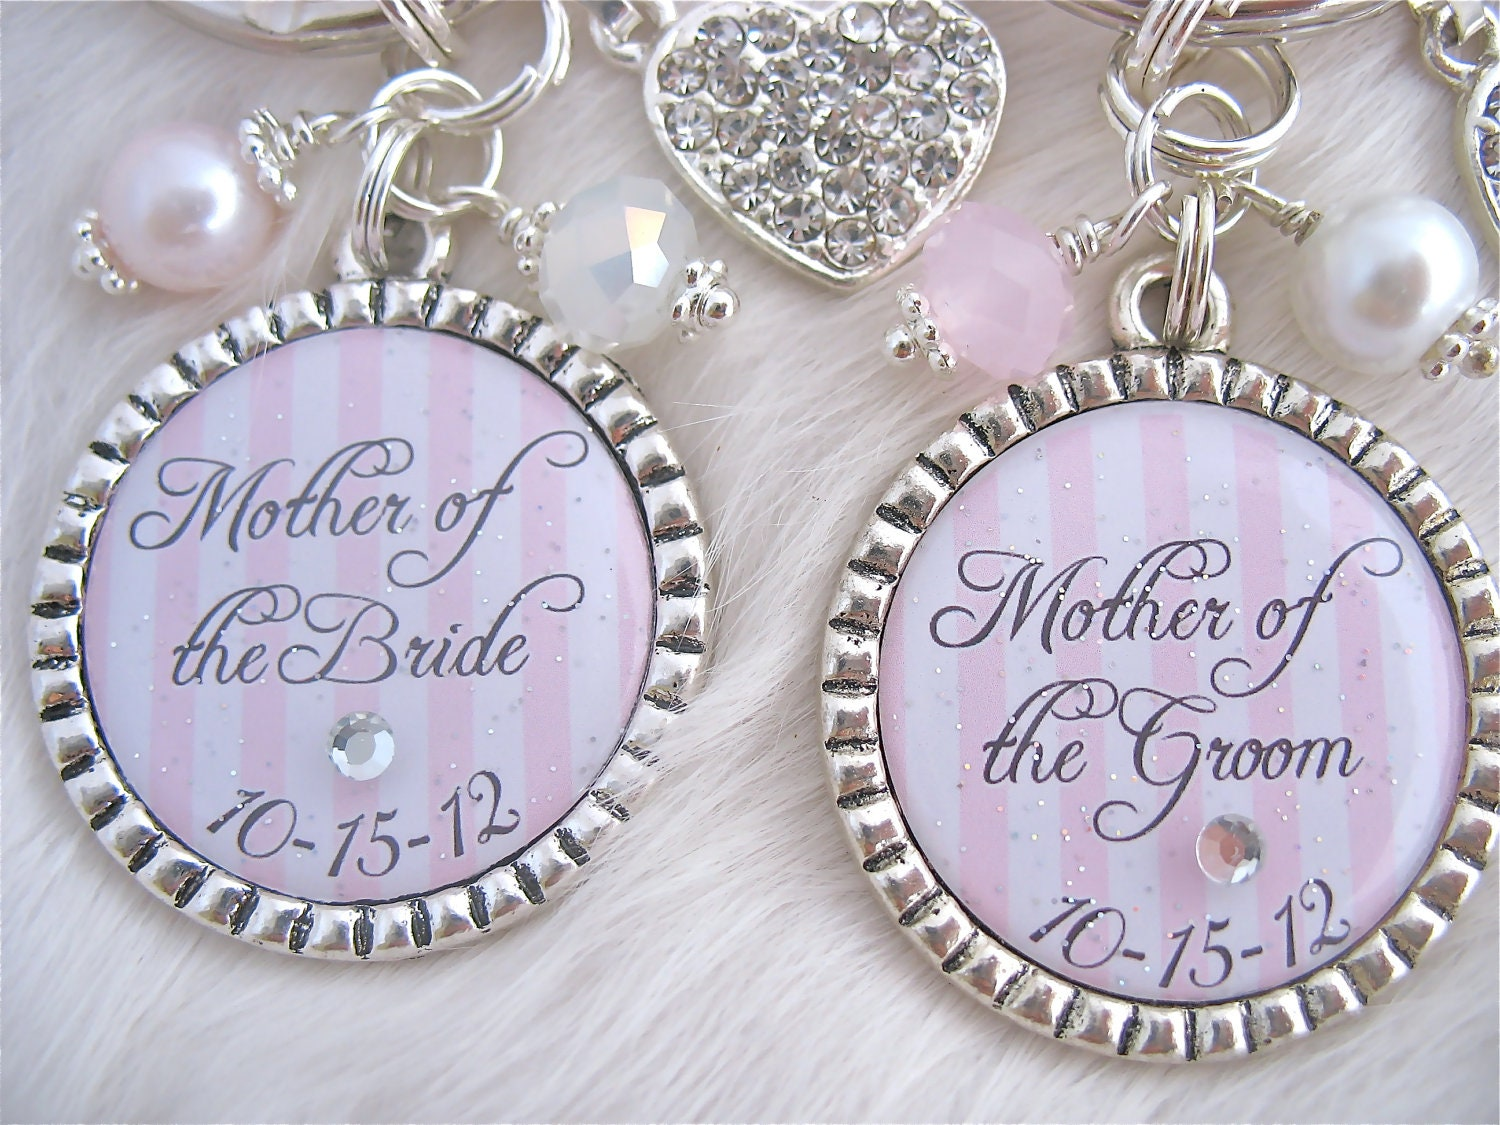 Mother Of Groom Gift Ideas For Bride : MOTHER of the BRIDE Gift Mother of the Groom by MyBlueSnowflake